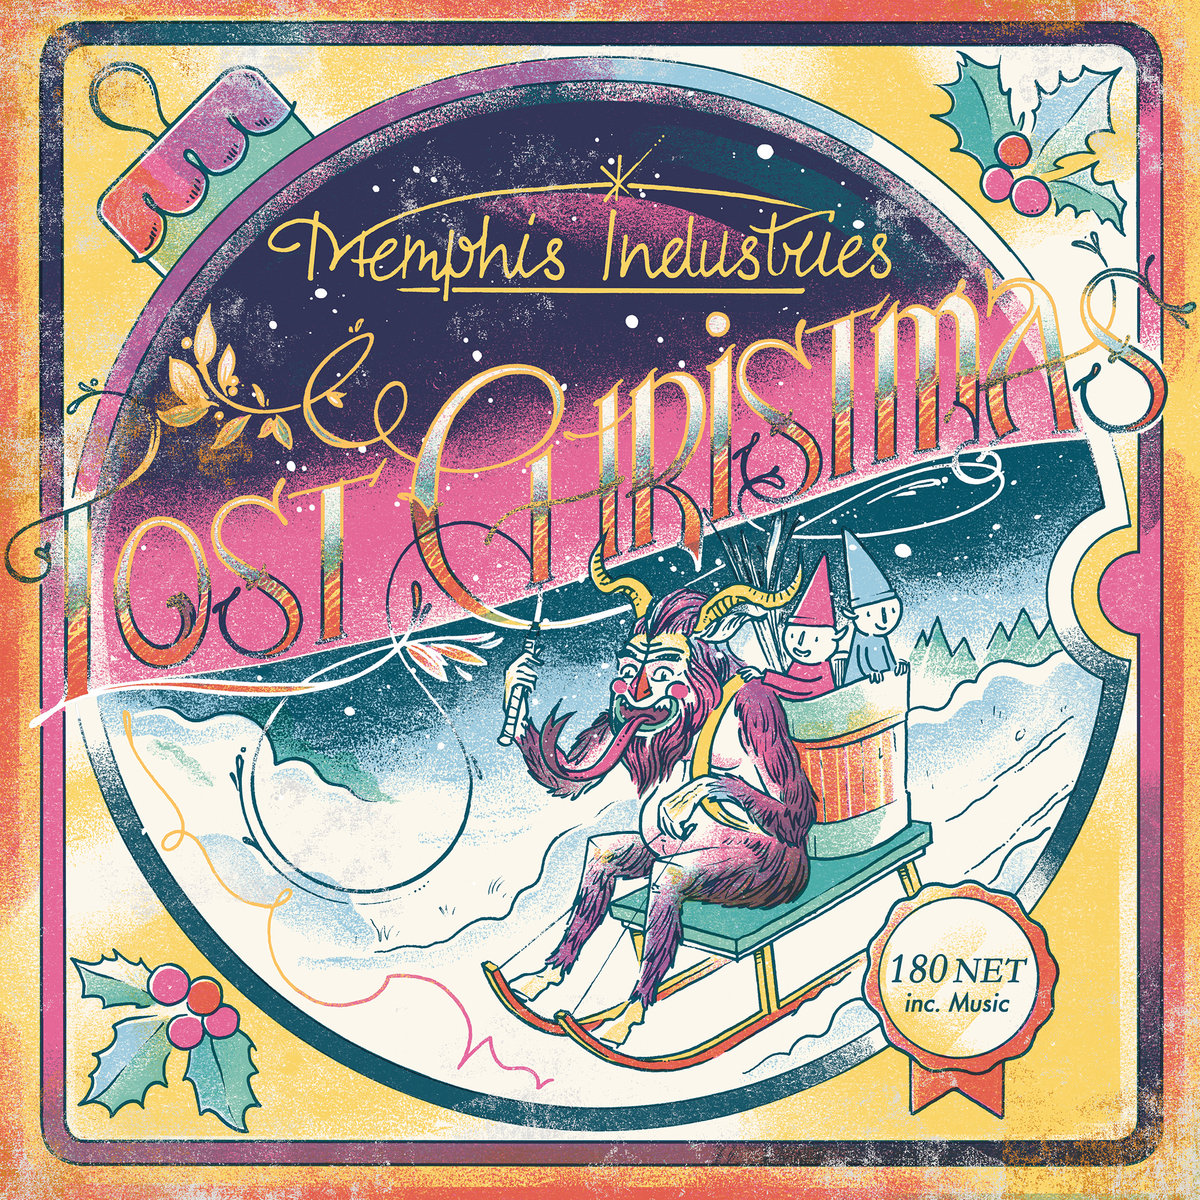 News – Lost Christmas – A Memphis Industries Festive Selection Box